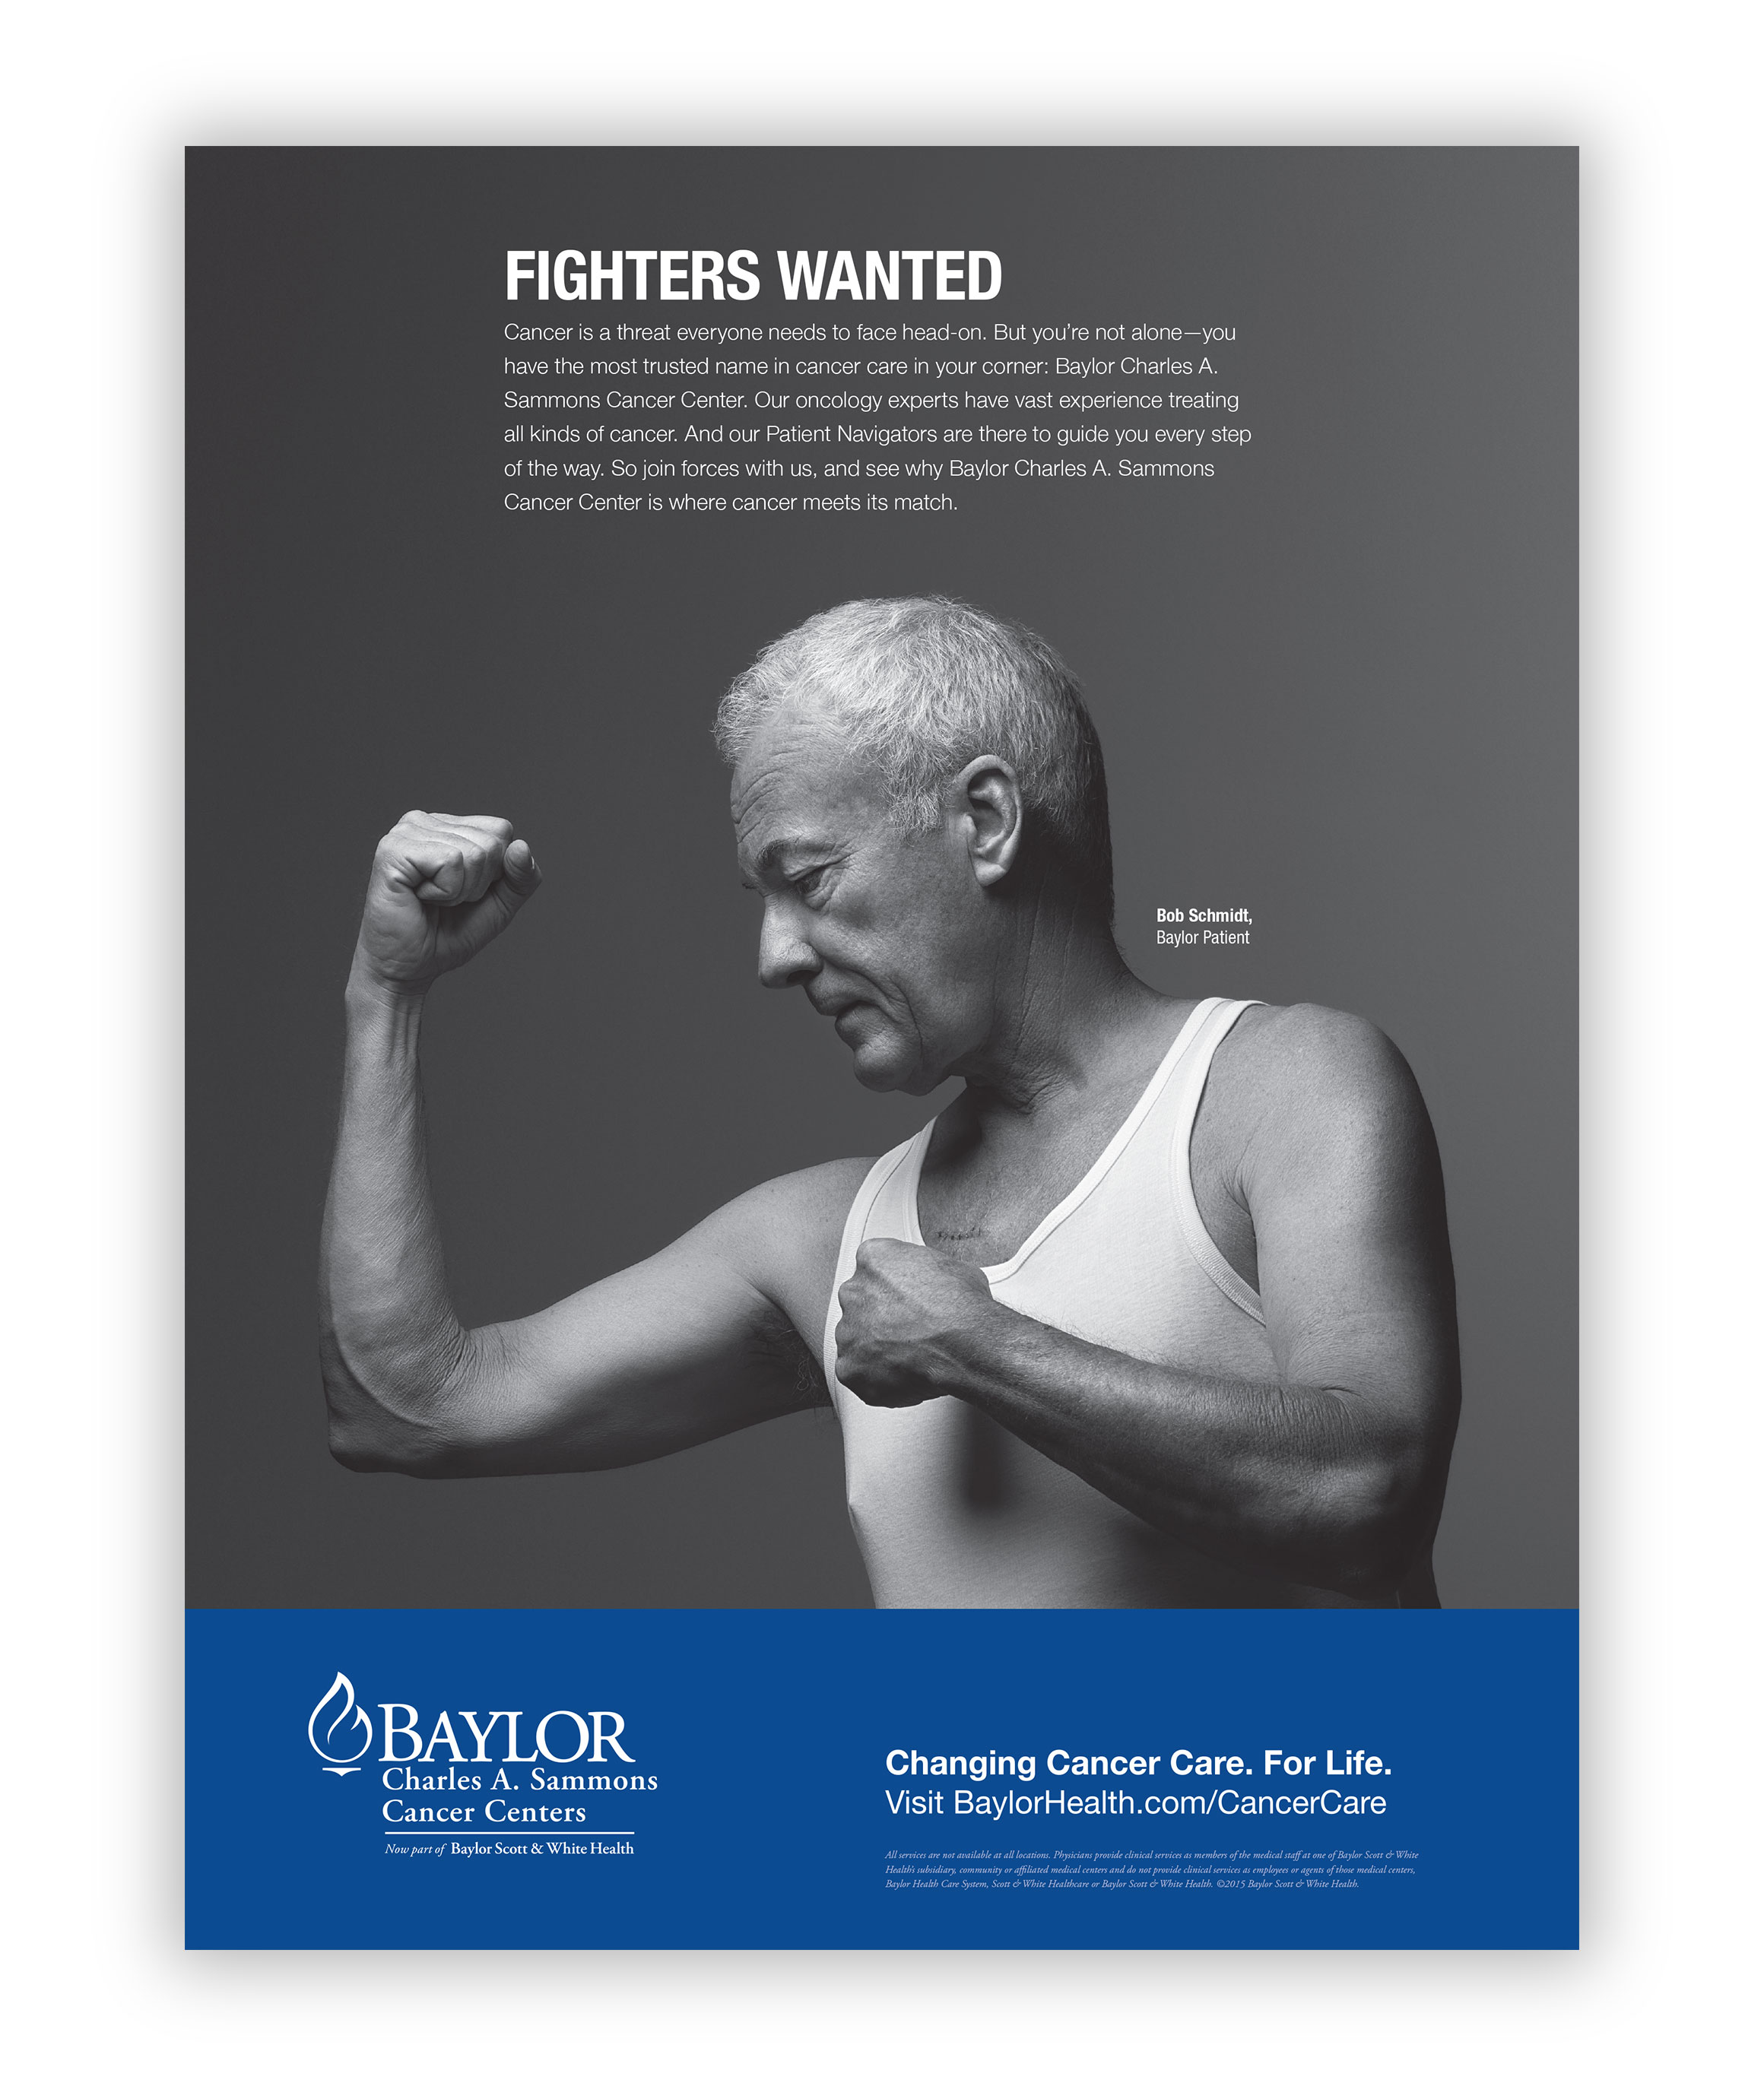 baylor-oncology-fighters-wanted.jpg